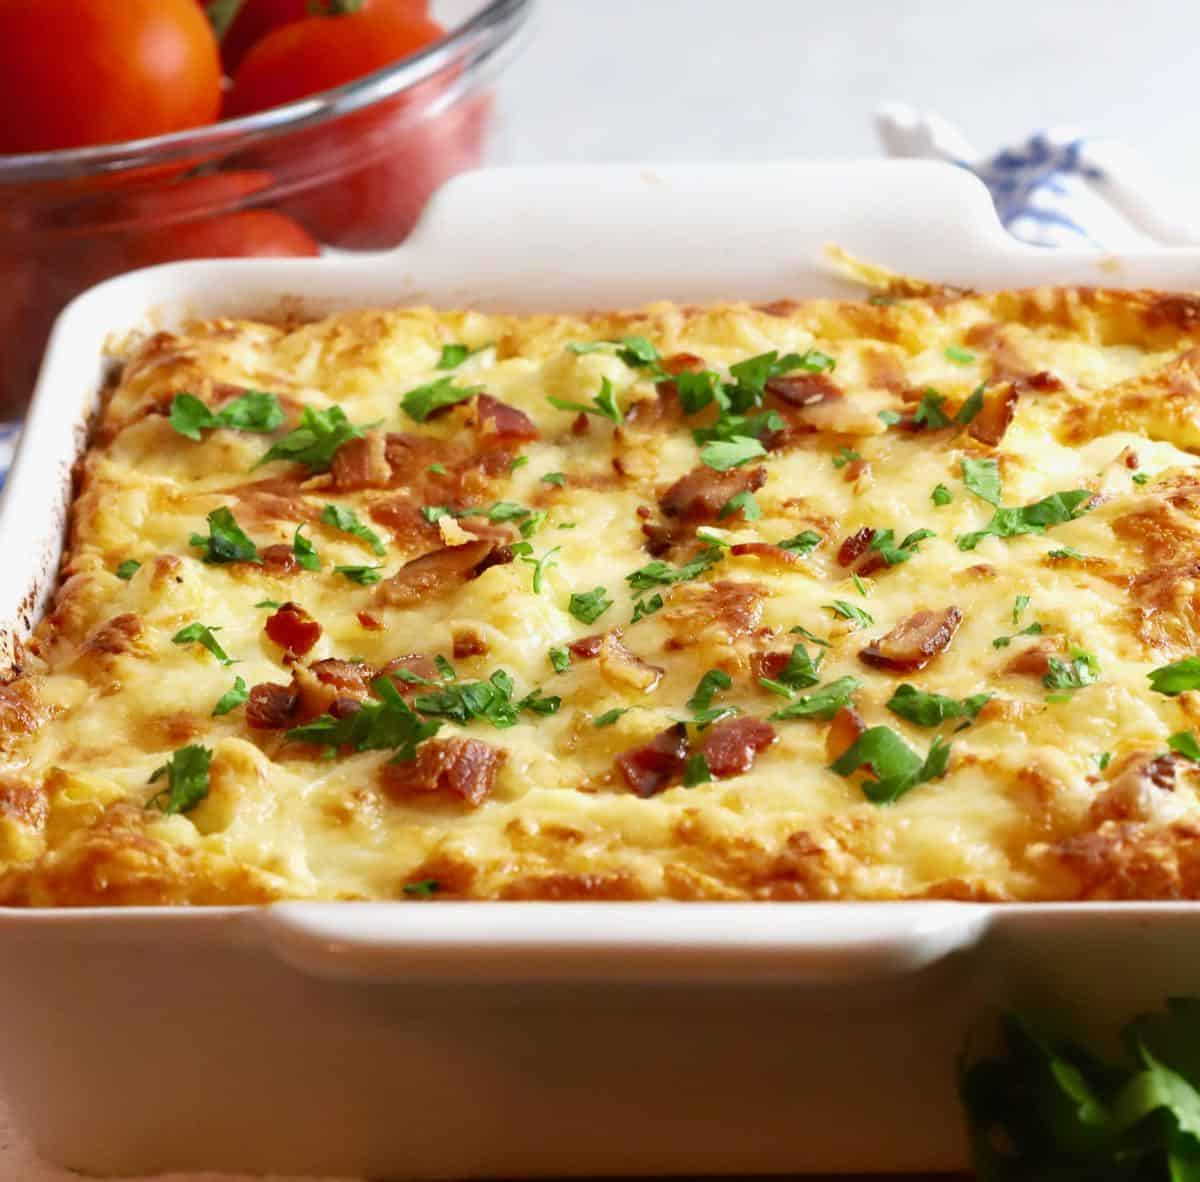 Cauliflower Cheese Bake in a white baking dish.